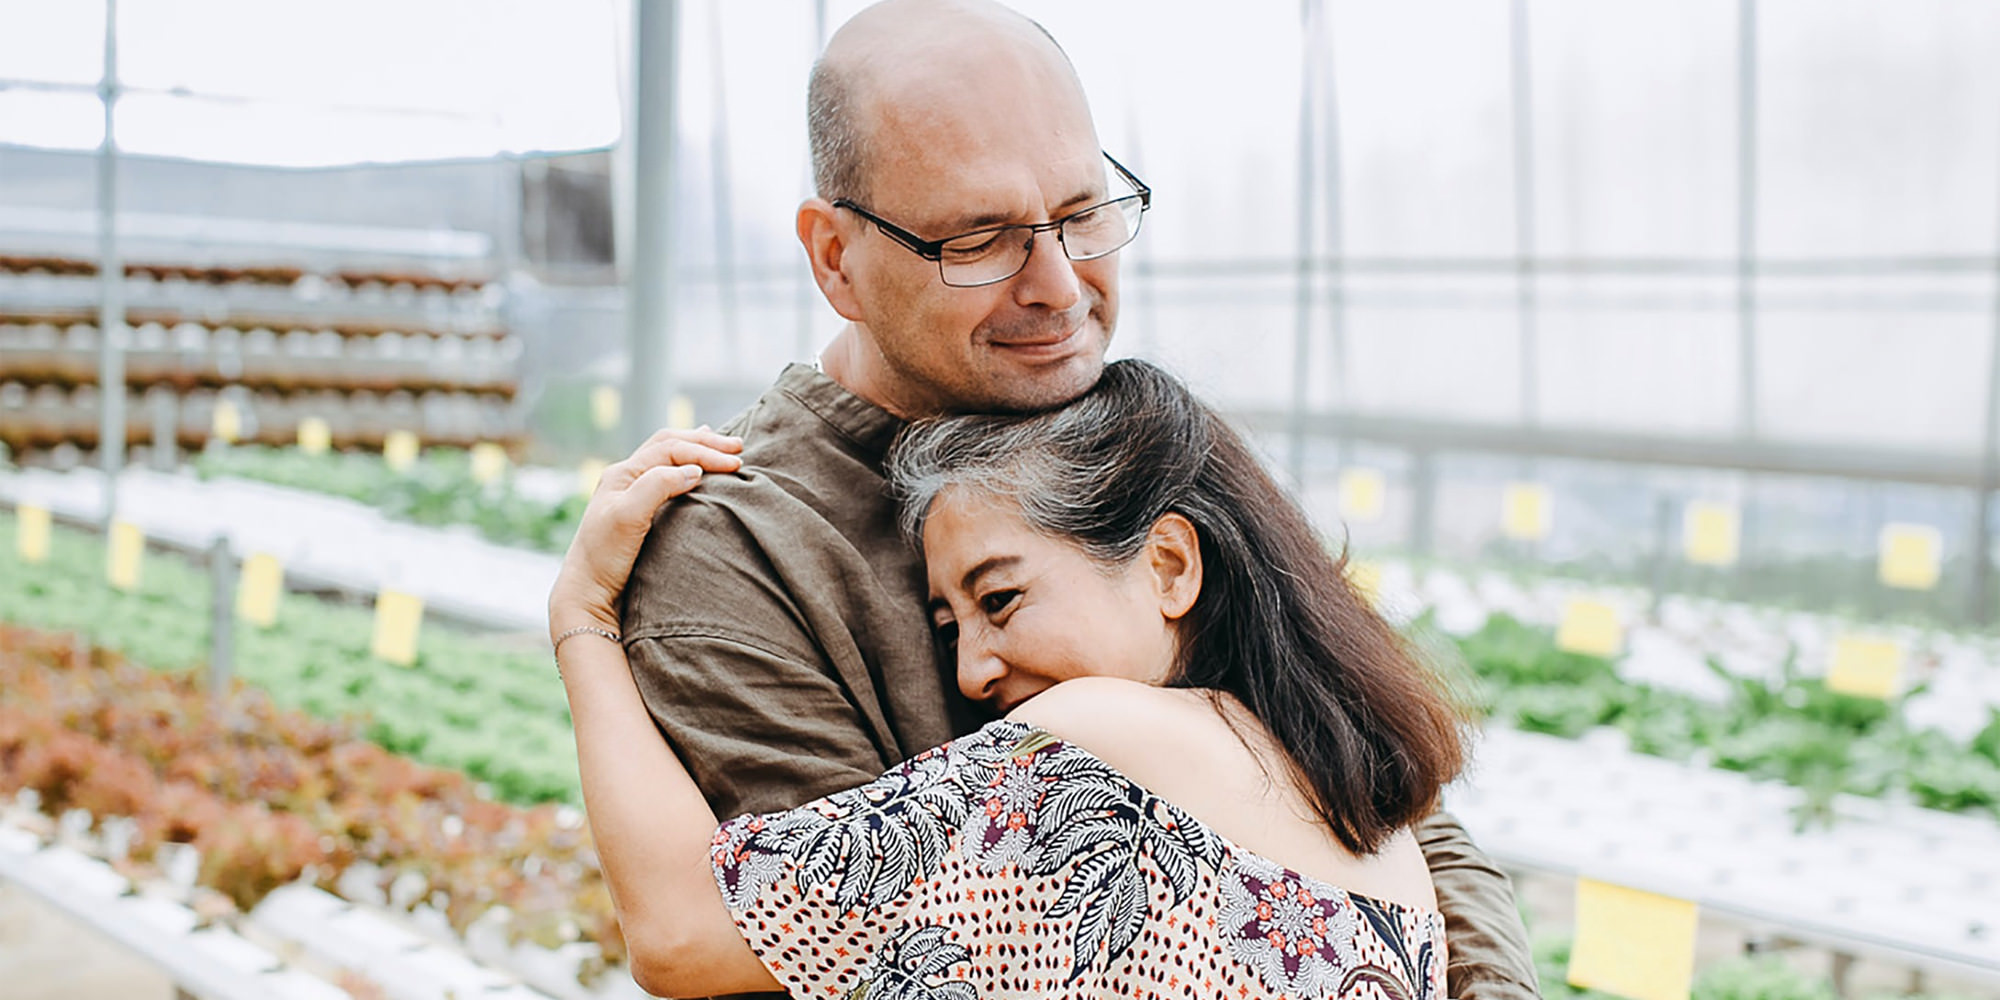 Sexual health is an important component of physical health, too! In this picture, a middle-aged couple - a white man and an Asian woman - are locked in an embrace.